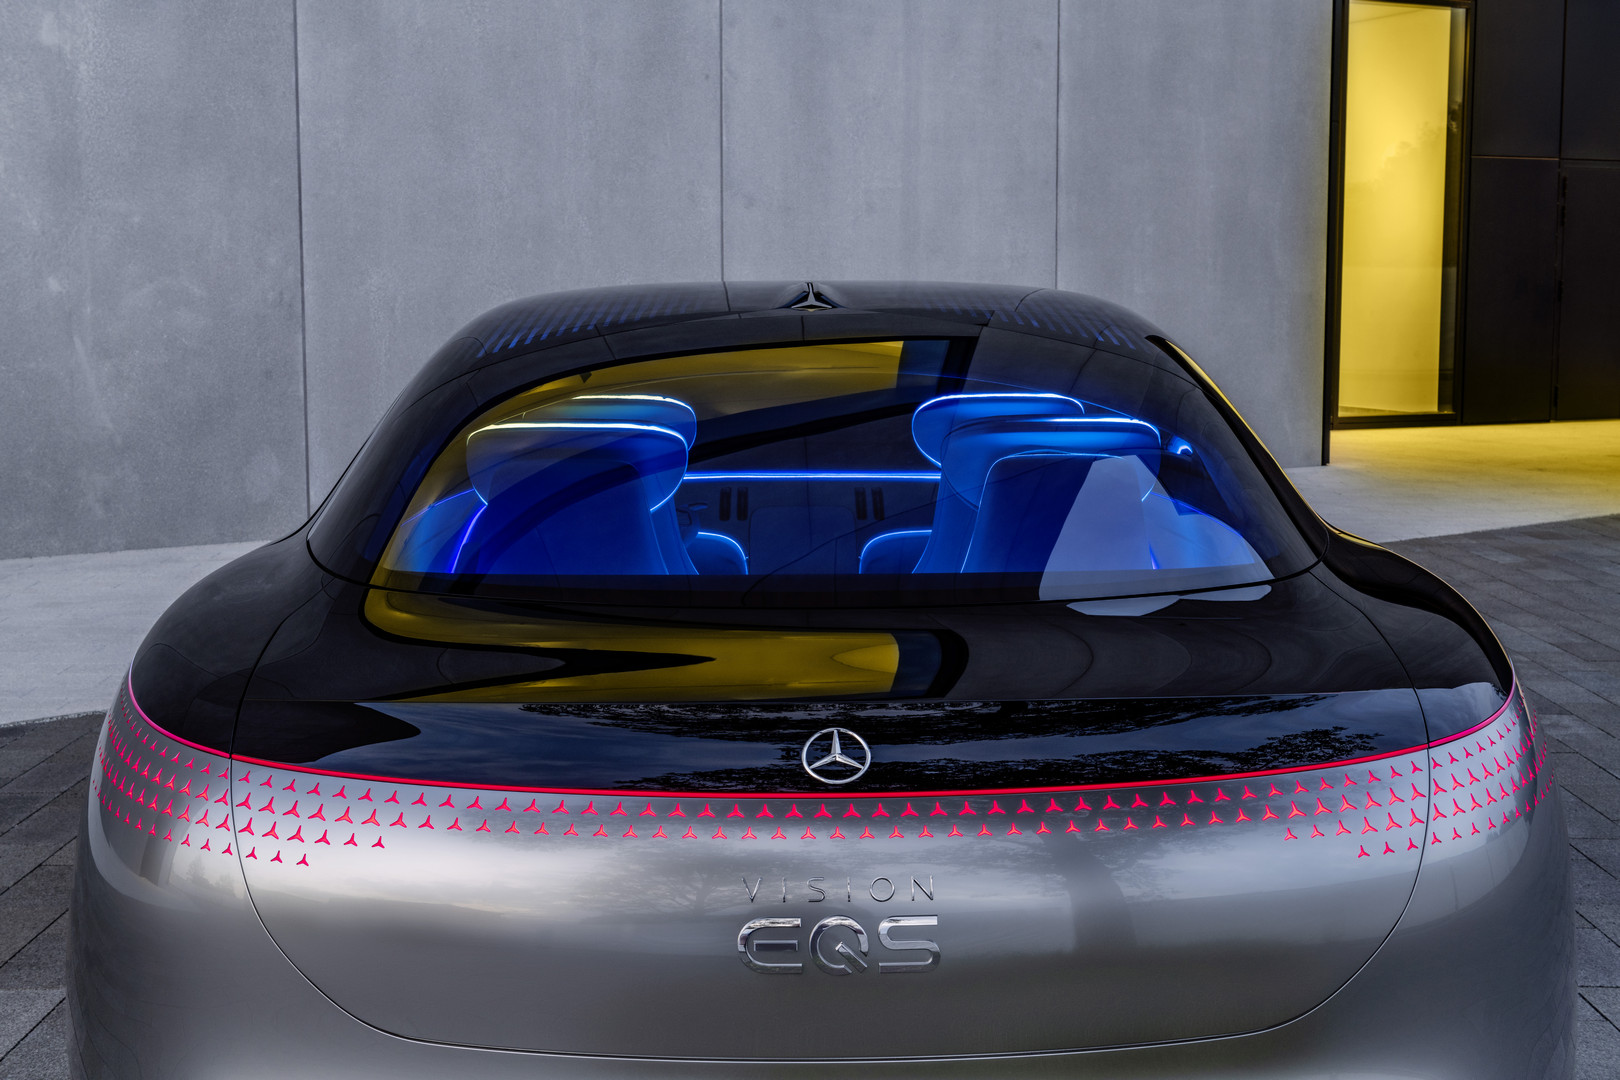 Mercedes-Benz VISION EQS Rear Lights